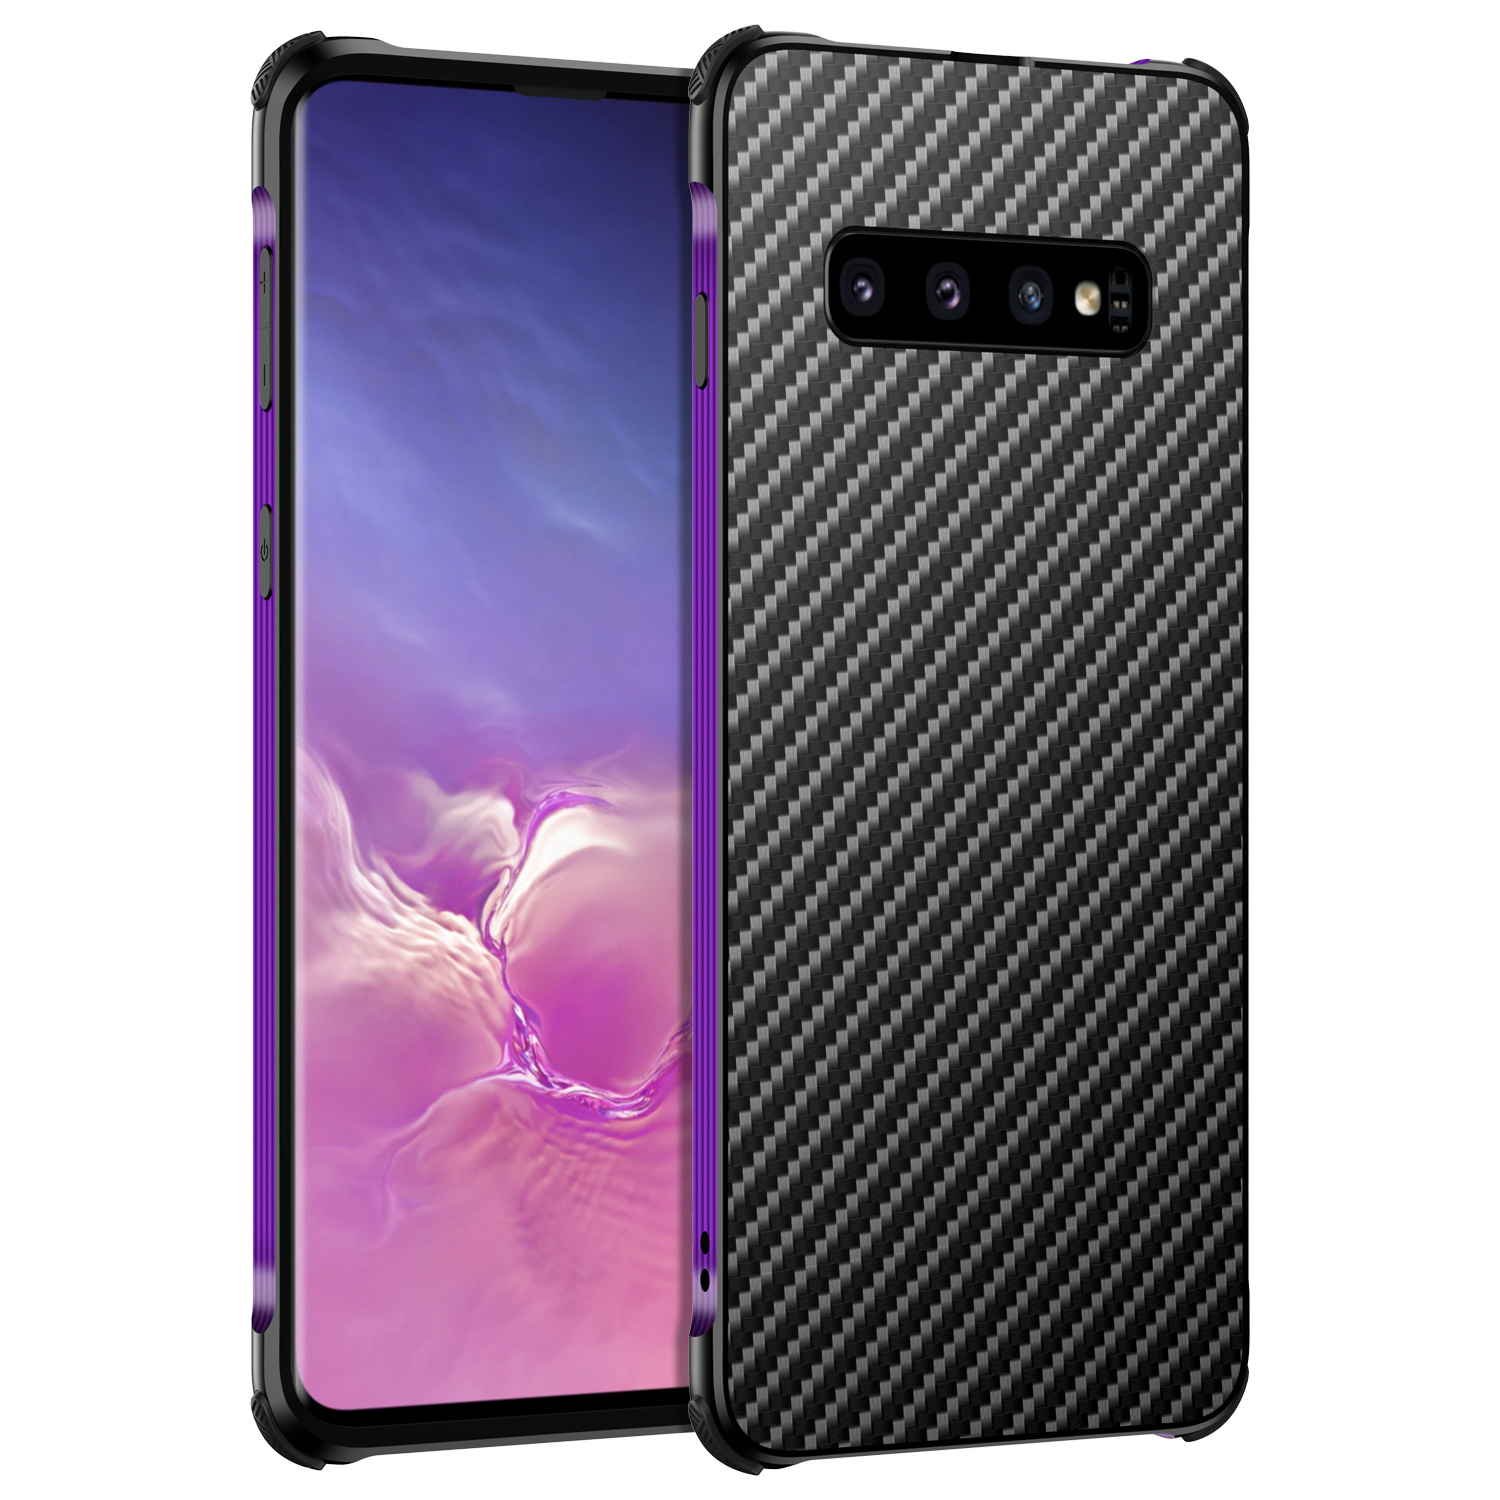 Beyour for Samsung S10 Case Runway Gene Metal Frame Carbon Fiber Cover For Samsung Galaxy S8 S9 Note 8 9 10 Plus Phone Case Capa